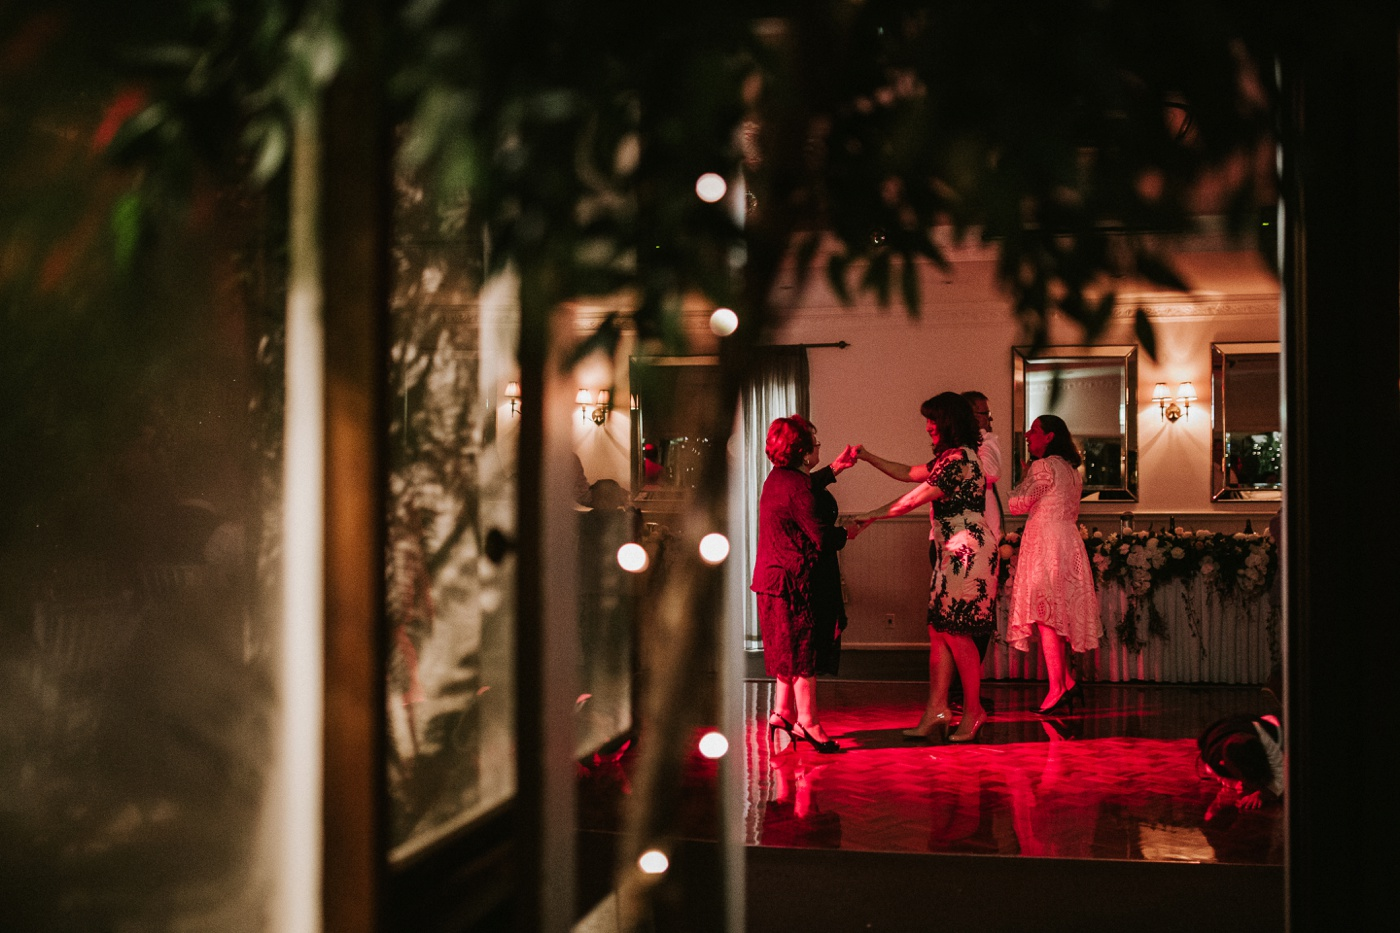 wesleybianca_dandenongs-sherbrooke-poets-lane-wedding_melbourne-quirky-fun-candid-wedding-photography_85